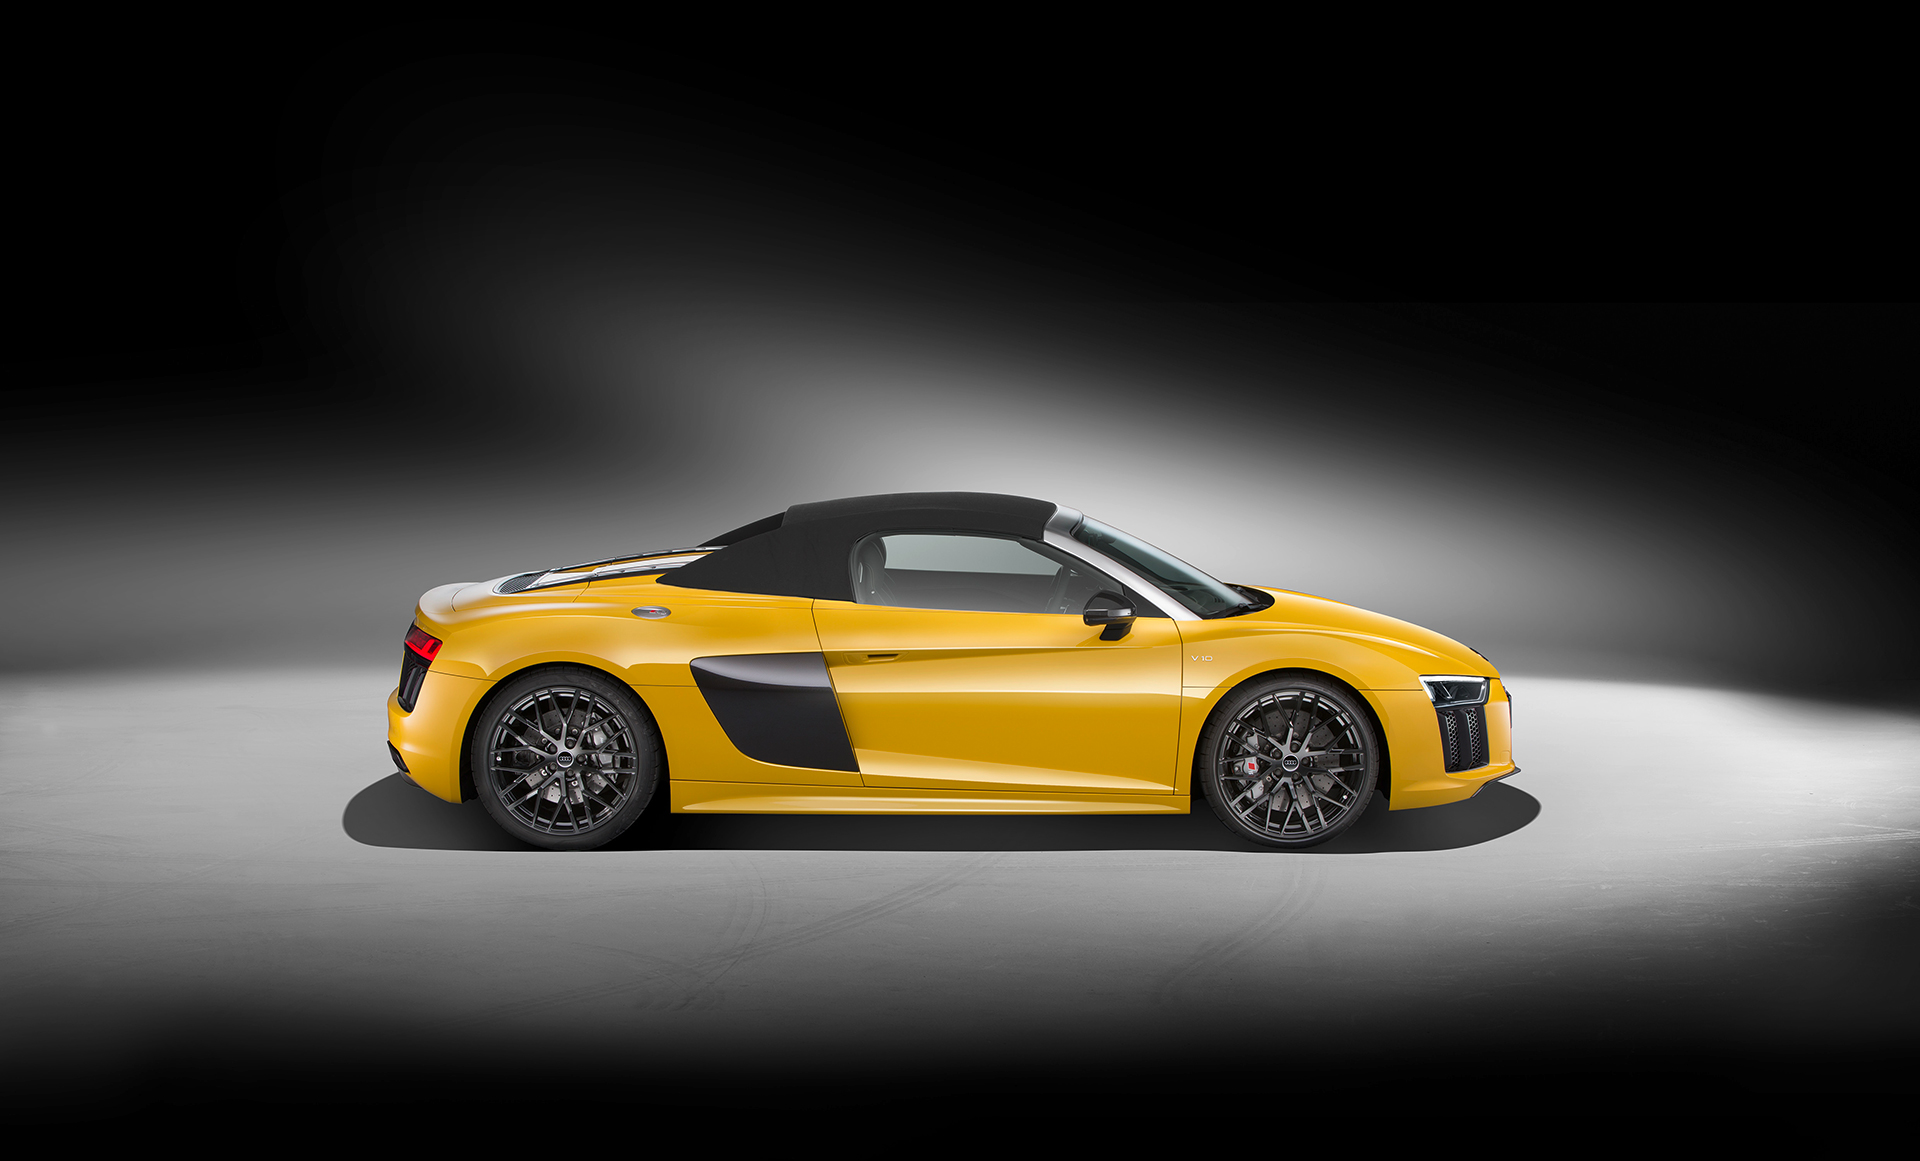 Audi R8 Spyder V10 - 2016 - side-face / profil - close top / toit fermé